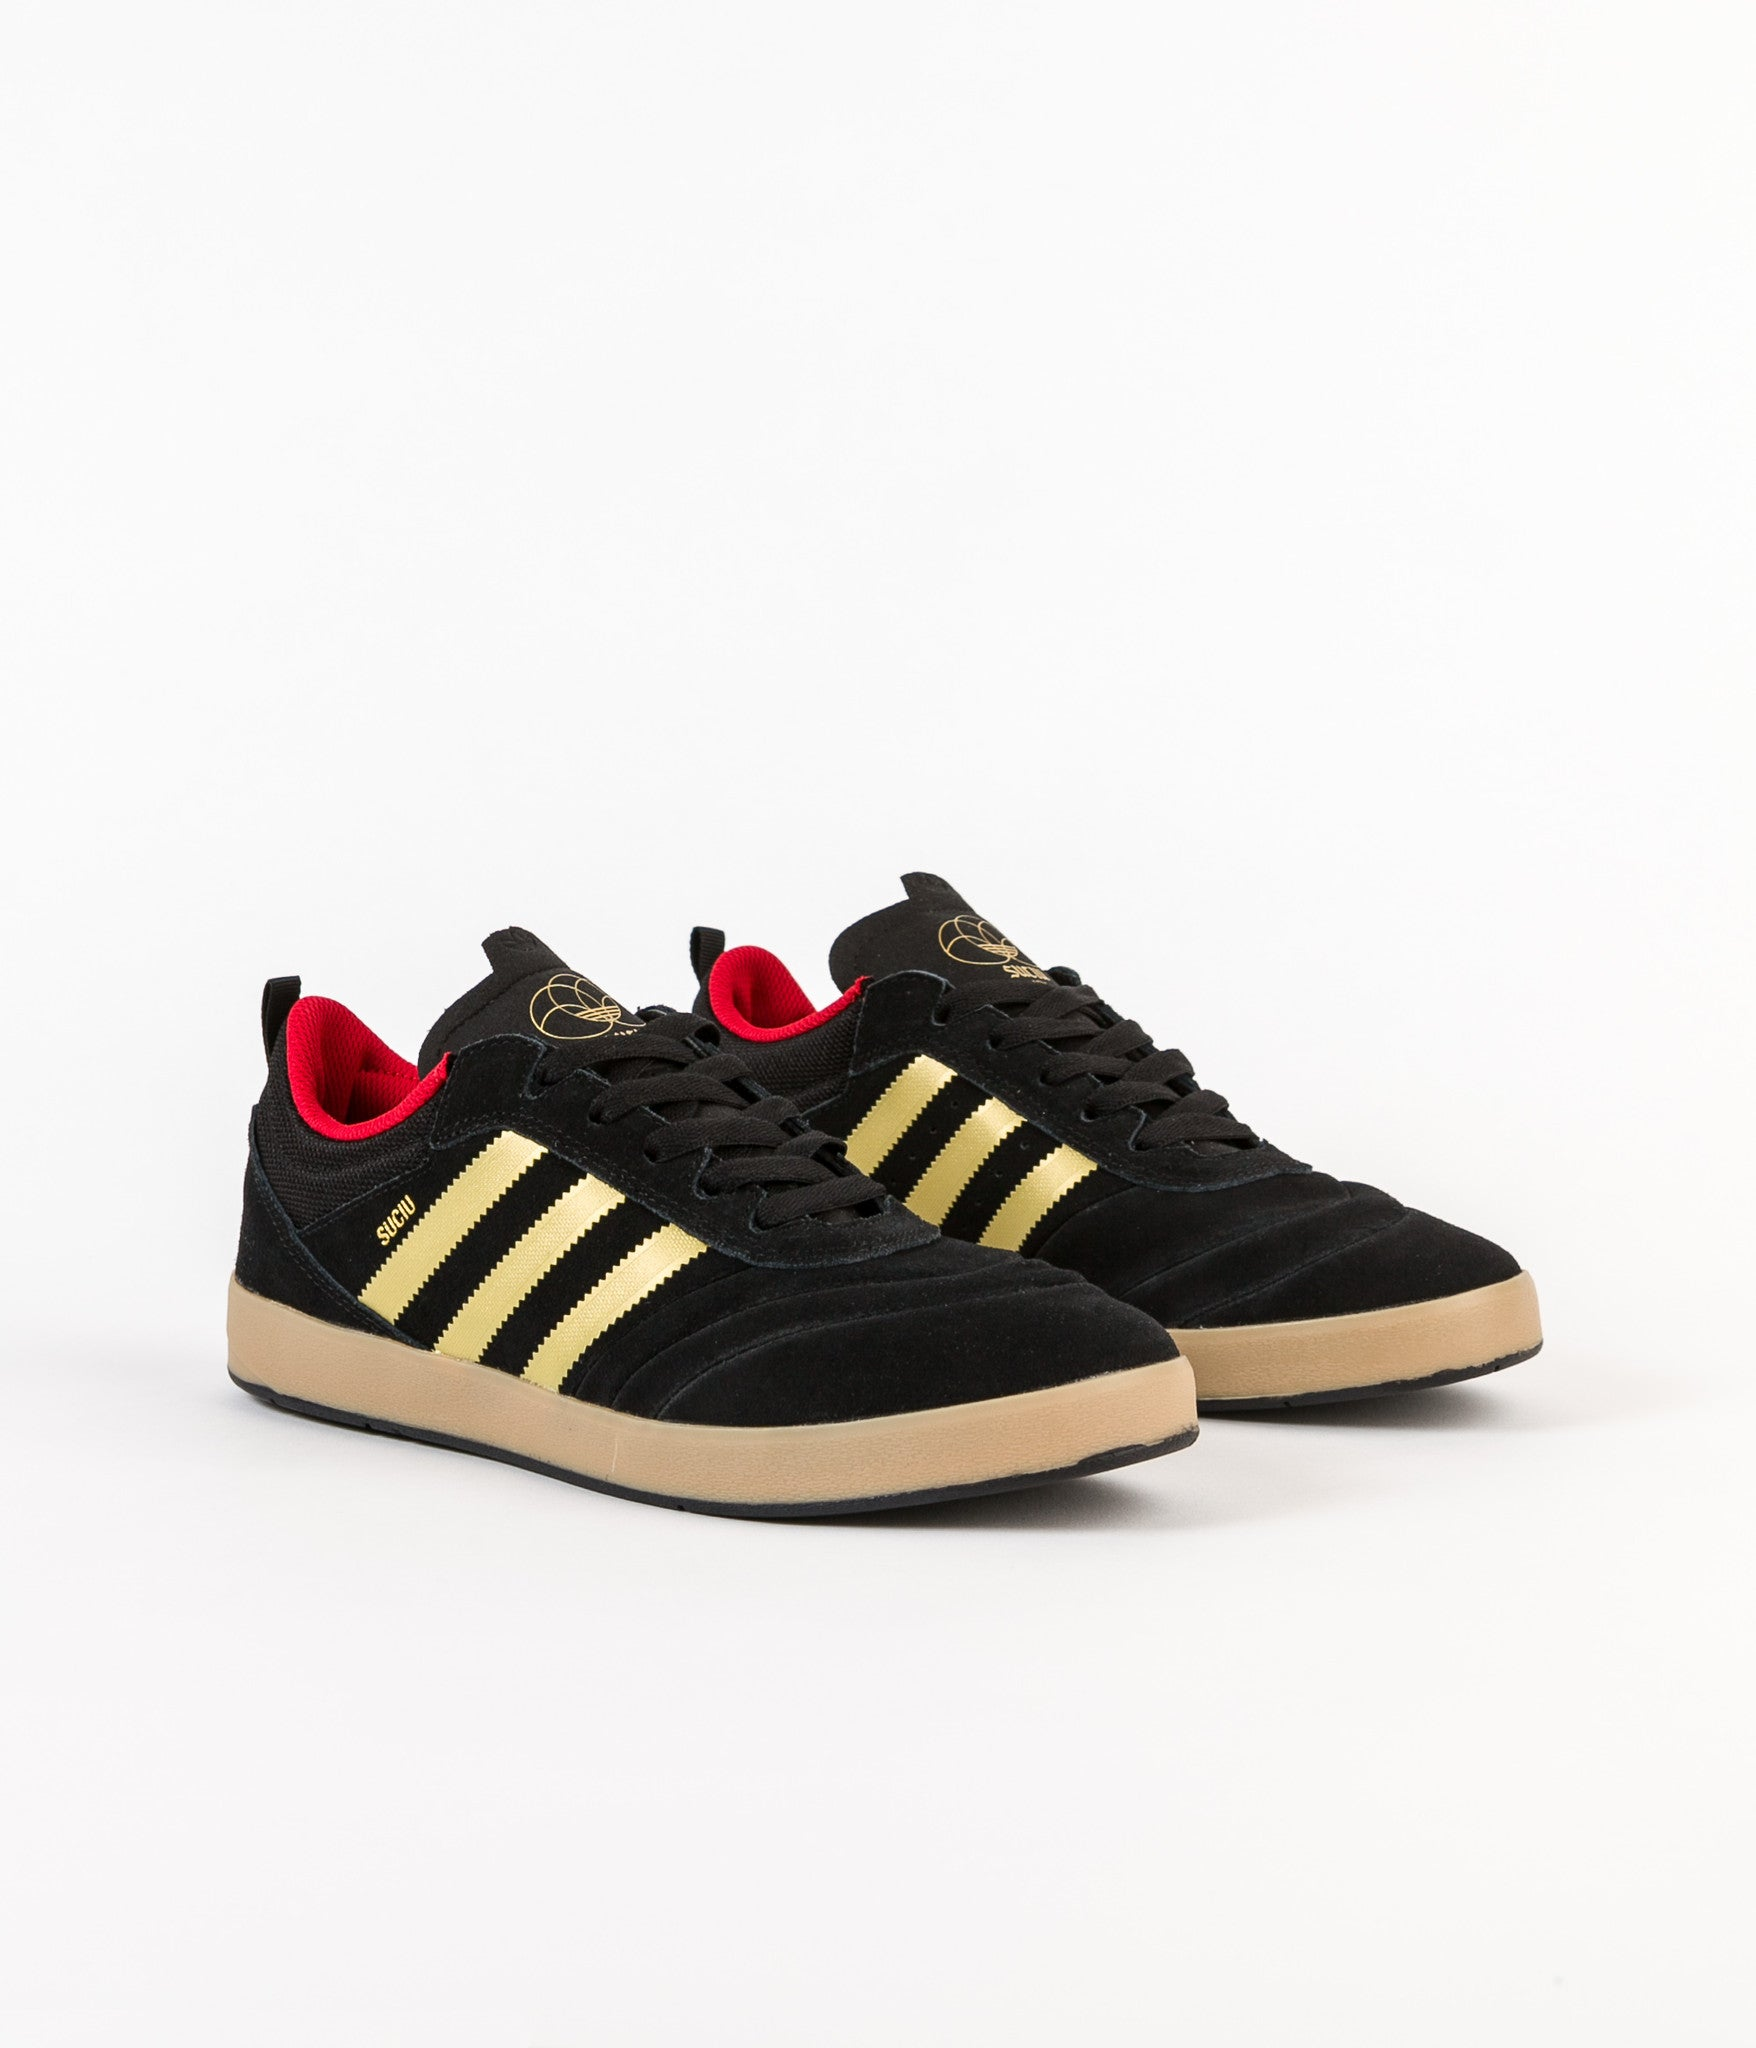 Adidas Suciu Adv Shoes - Core Black / Gold Foil / Gum4